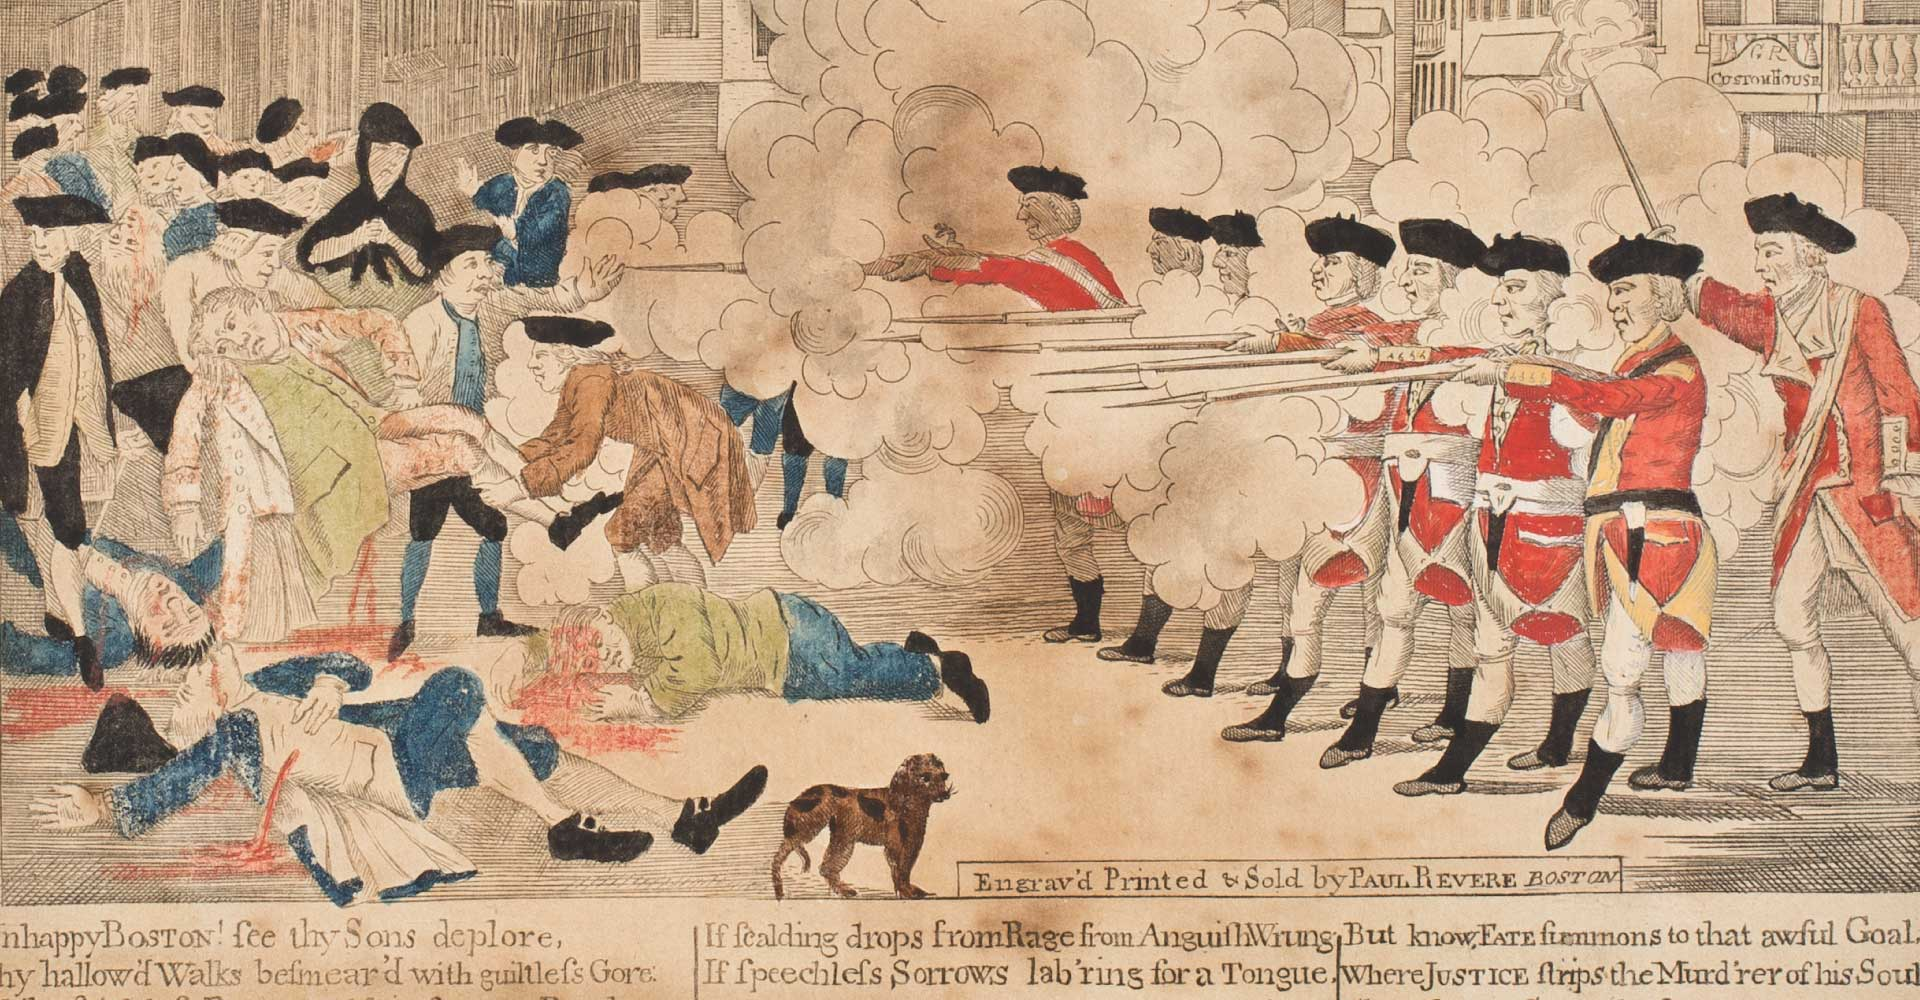 Detail of 'The Bloody Massacre Perpetuated in King-Street Boston on March 5th 1770', an engraving by Paul Revere